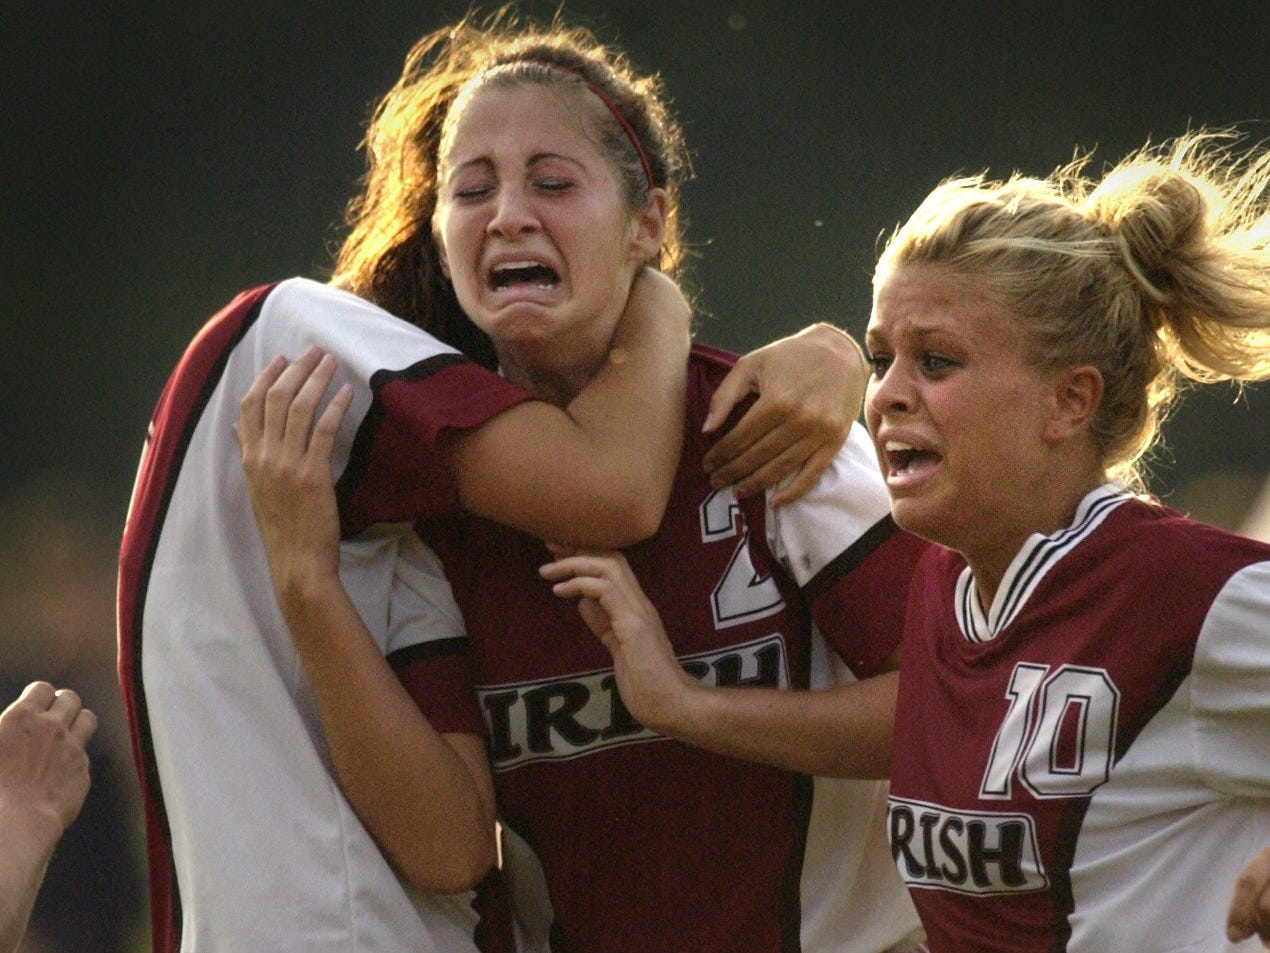 Julie Principe, center, celebrates with Aquinas teammates Carly Miller, left, and Sarah Eichas, following their 2-1 victory over rival Mercy on Sept. 14, 2004 at Mercy High School in Brighton.